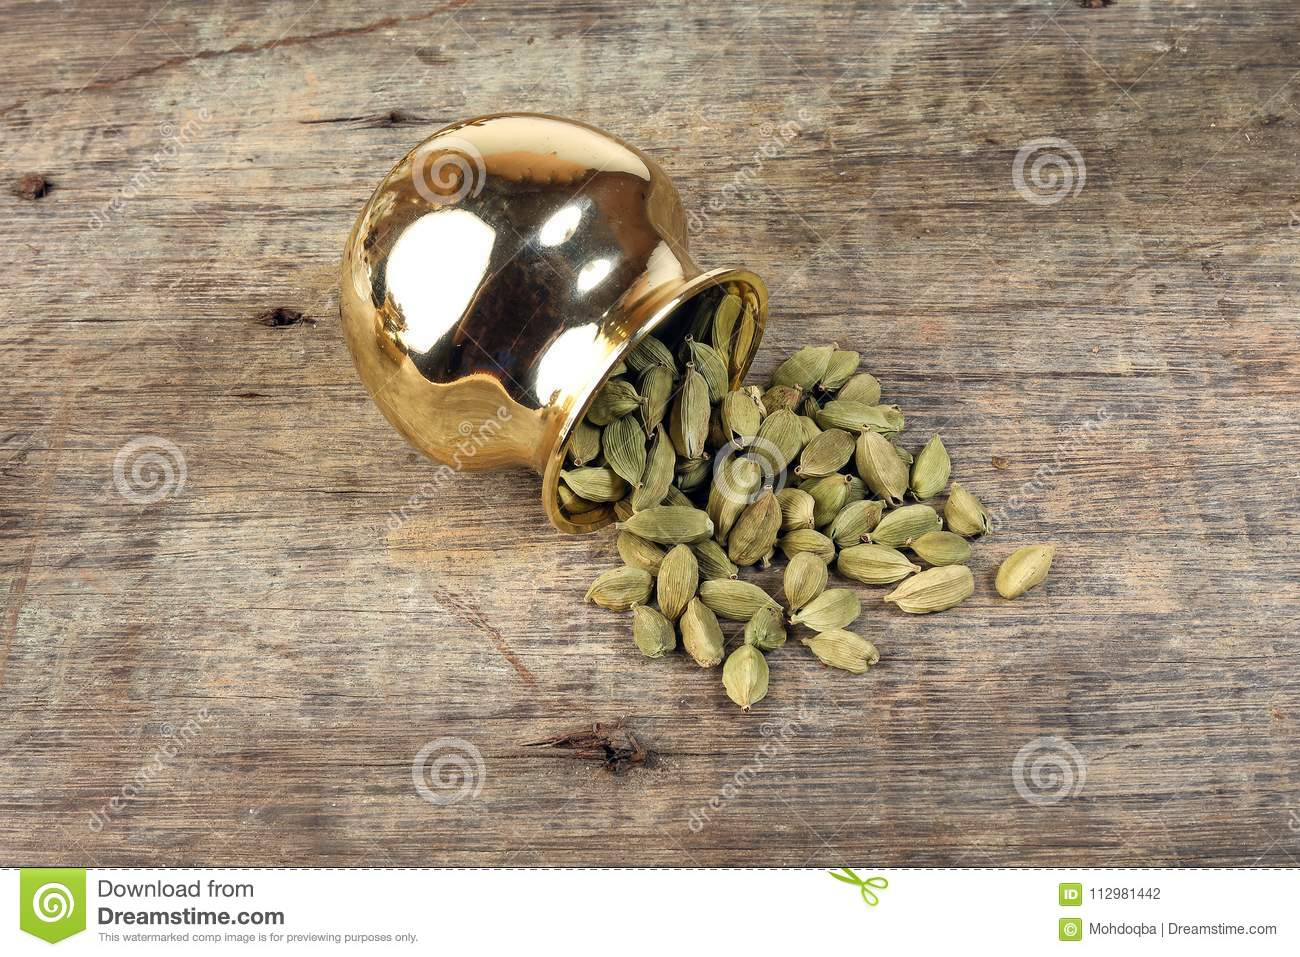 Cardamom spice in golden metal pot on rustic wood